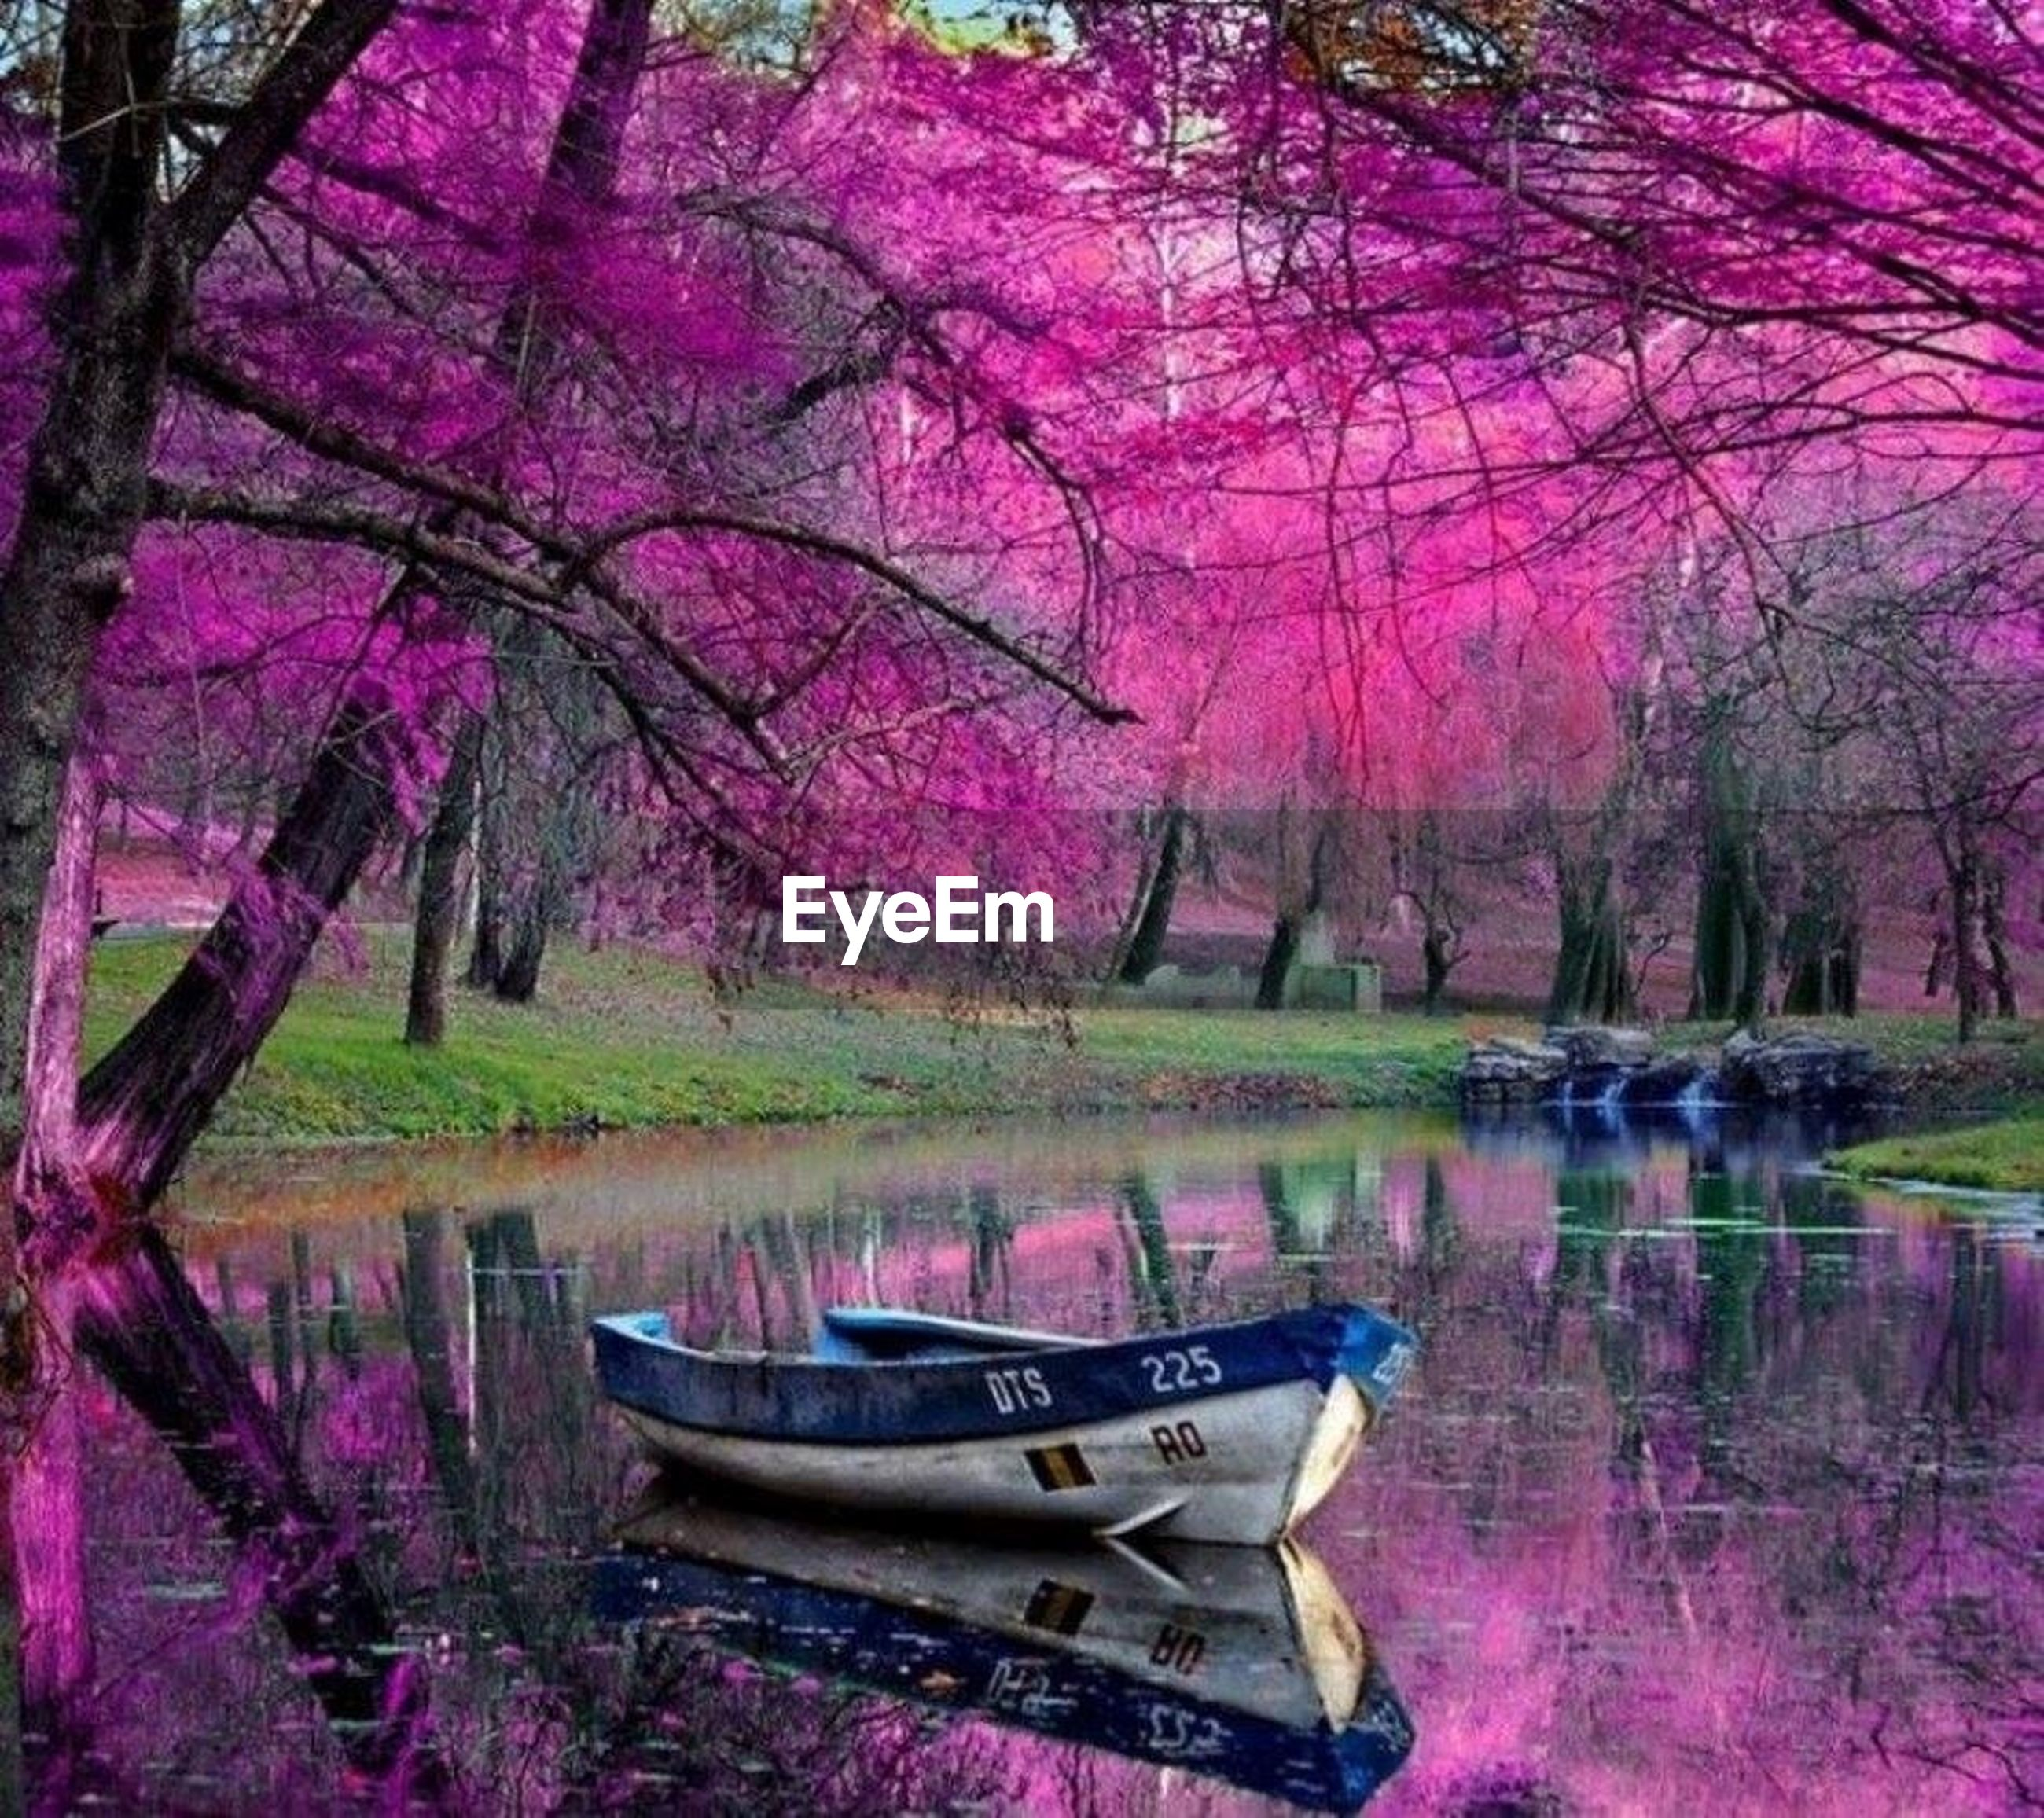 tree, water, lake, tranquil scene, tranquility, beauty in nature, reflection, nature, nautical vessel, boat, branch, growth, scenics, pink color, moored, idyllic, transportation, outdoors, mode of transport, lakeshore